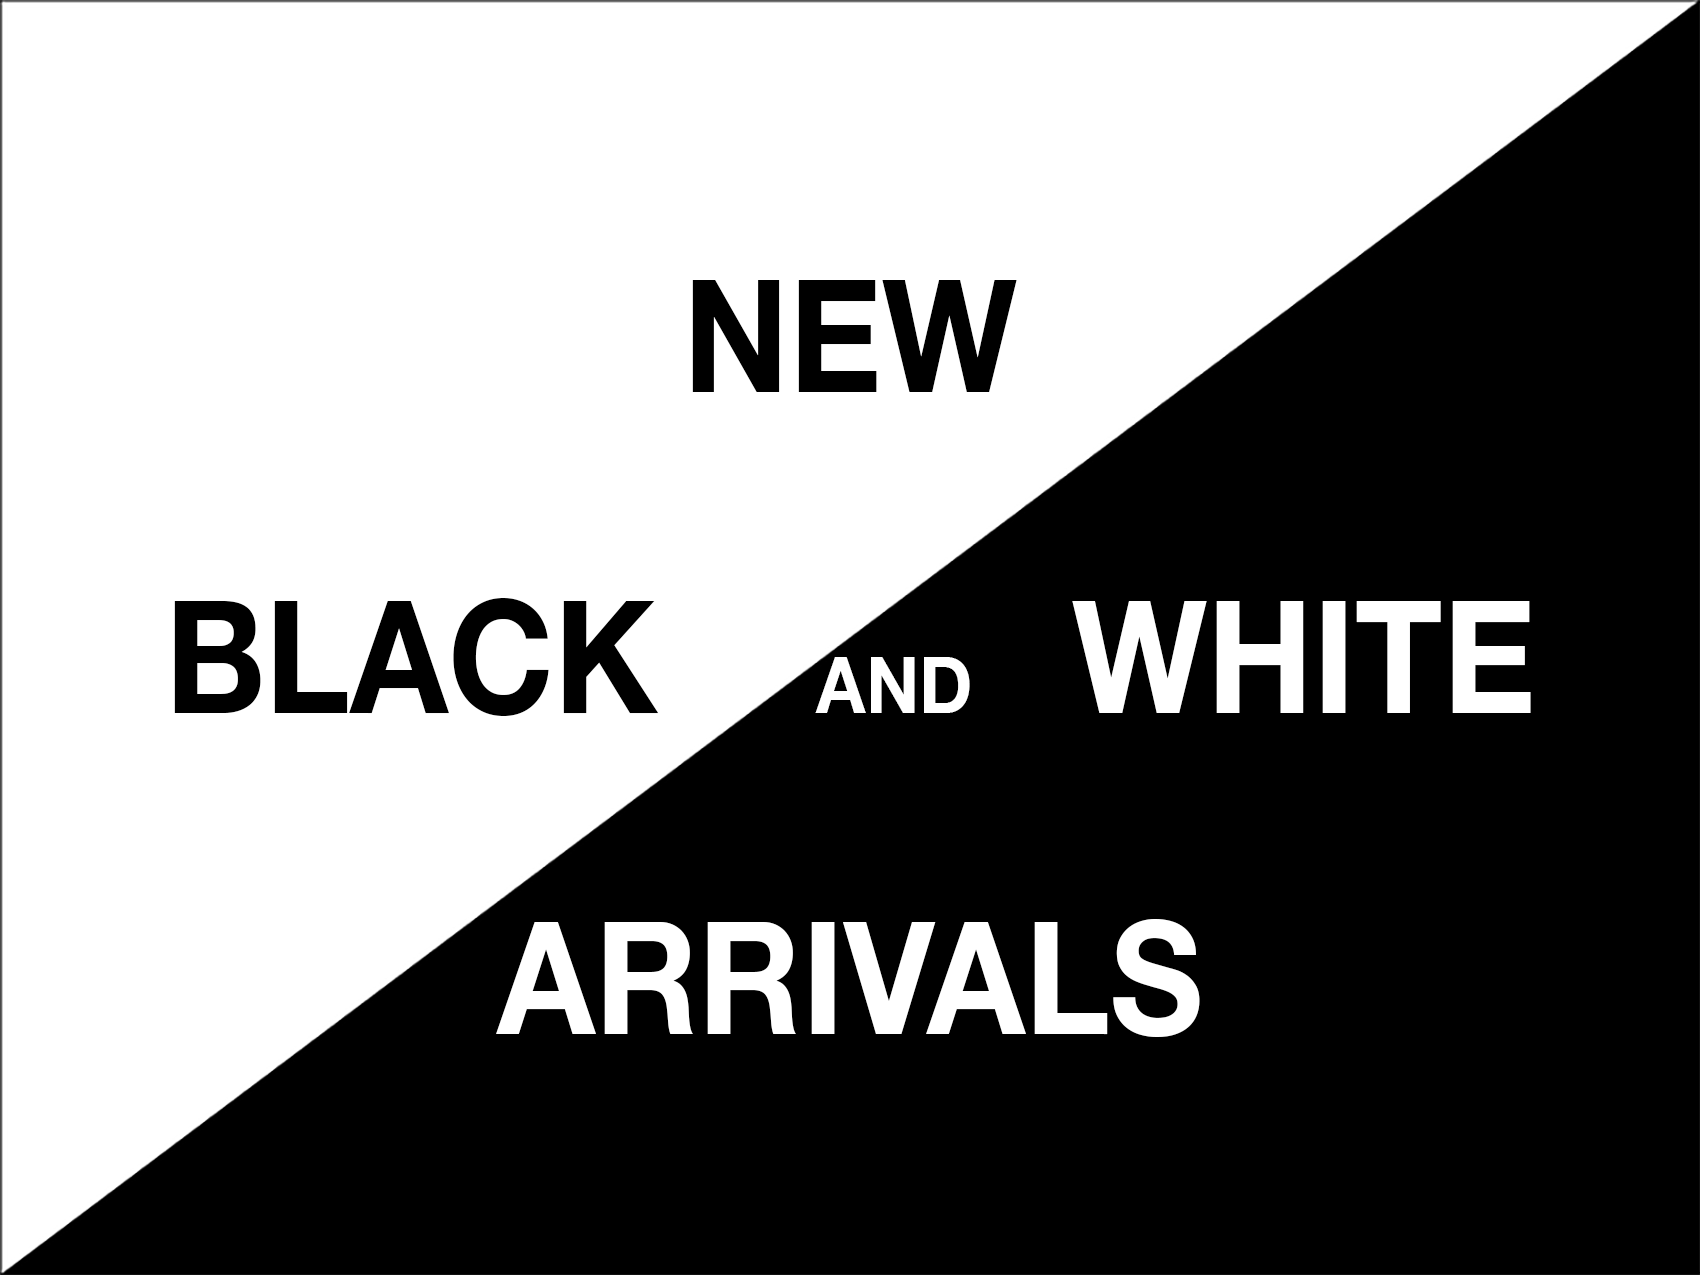 New Black and White Arrivals